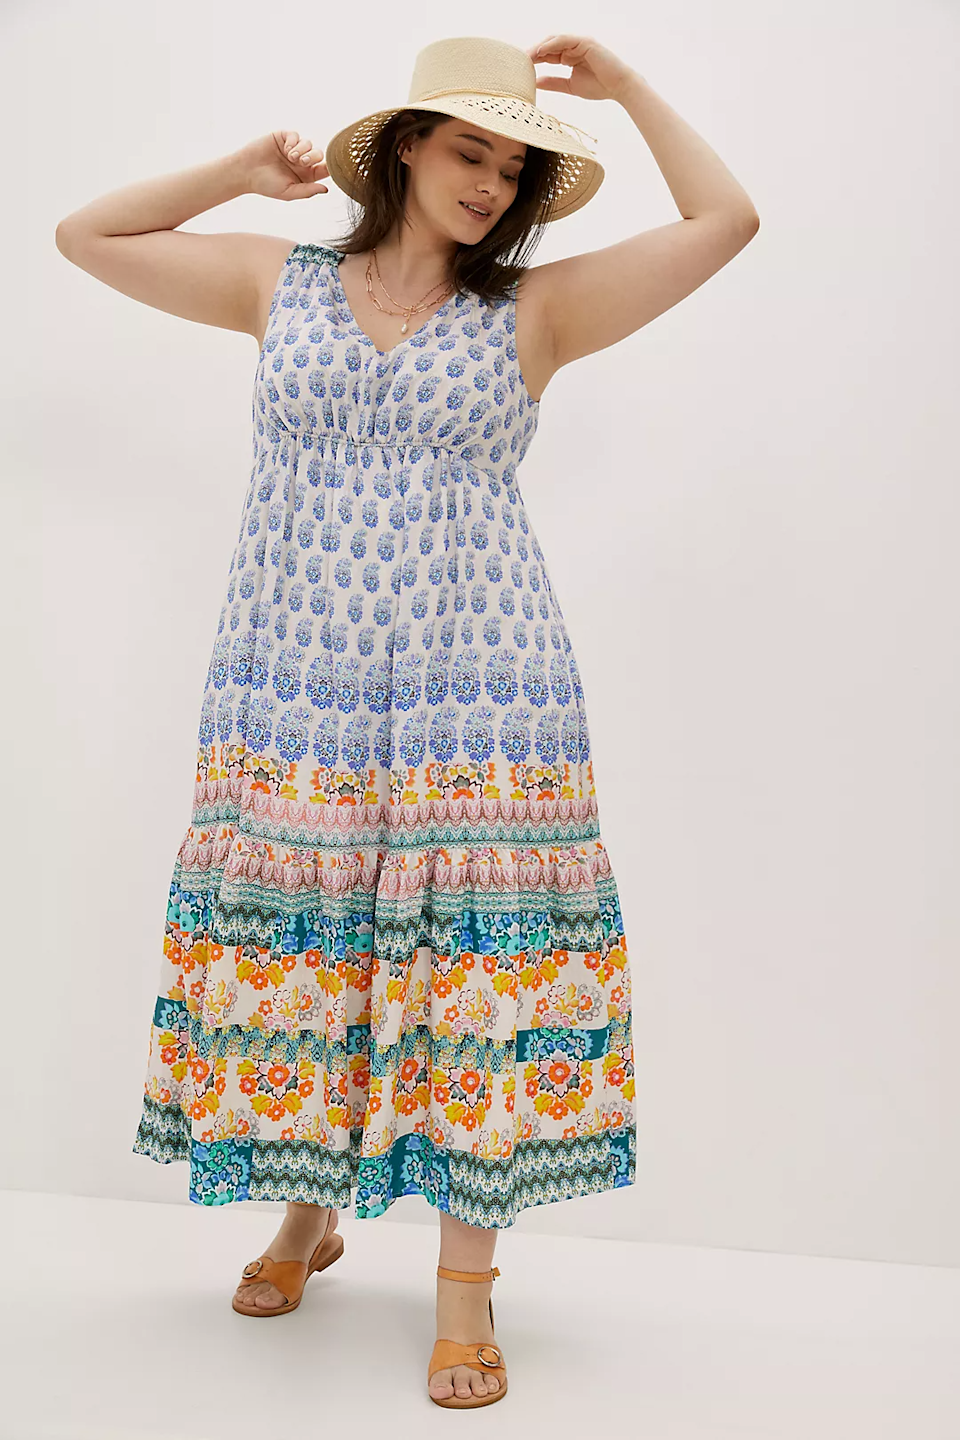 """<br><h2>Anthropologie Gathered Maxi Dress<br></h2><br><strong>Sizes Available: 1X-3X</strong><br><br><em>Shop <strong><a href=""""https://www.anthropologie.com/shop/gathered-maxi-dress?color=015&type=PLUS&quantity=1"""" rel=""""nofollow noopener"""" target=""""_blank"""" data-ylk=""""slk:Anthropologie"""" class=""""link rapid-noclick-resp"""">Anthropologie</a></strong></em><br><br><br><br><strong>Anthropologie</strong> Gathered Maxi Dress, $, available at <a href=""""https://go.skimresources.com/?id=30283X879131&url=https%3A%2F%2Fwww.anthropologie.com%2Fshop%2Fgathered-maxi-dress"""" rel=""""nofollow noopener"""" target=""""_blank"""" data-ylk=""""slk:Anthropologie"""" class=""""link rapid-noclick-resp"""">Anthropologie</a>"""